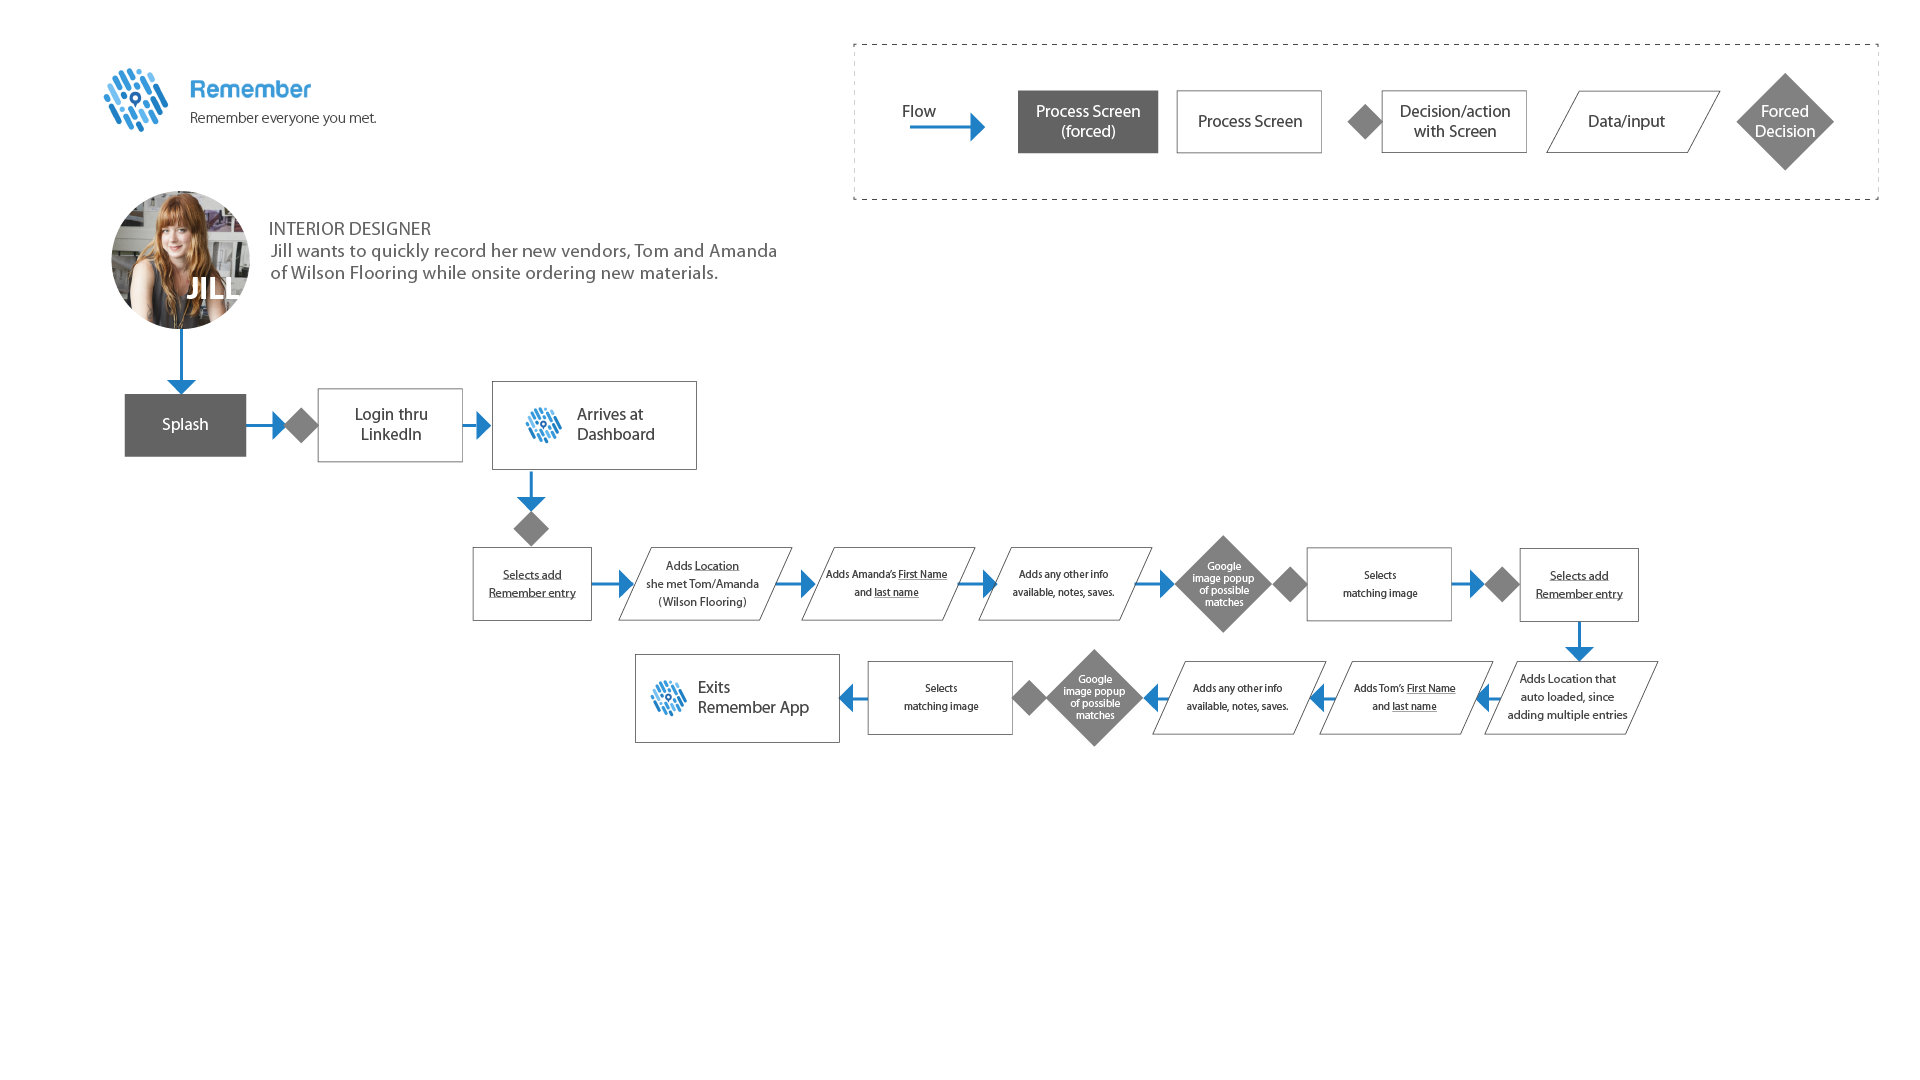 user-flow_User-flow-1 copy 4.png